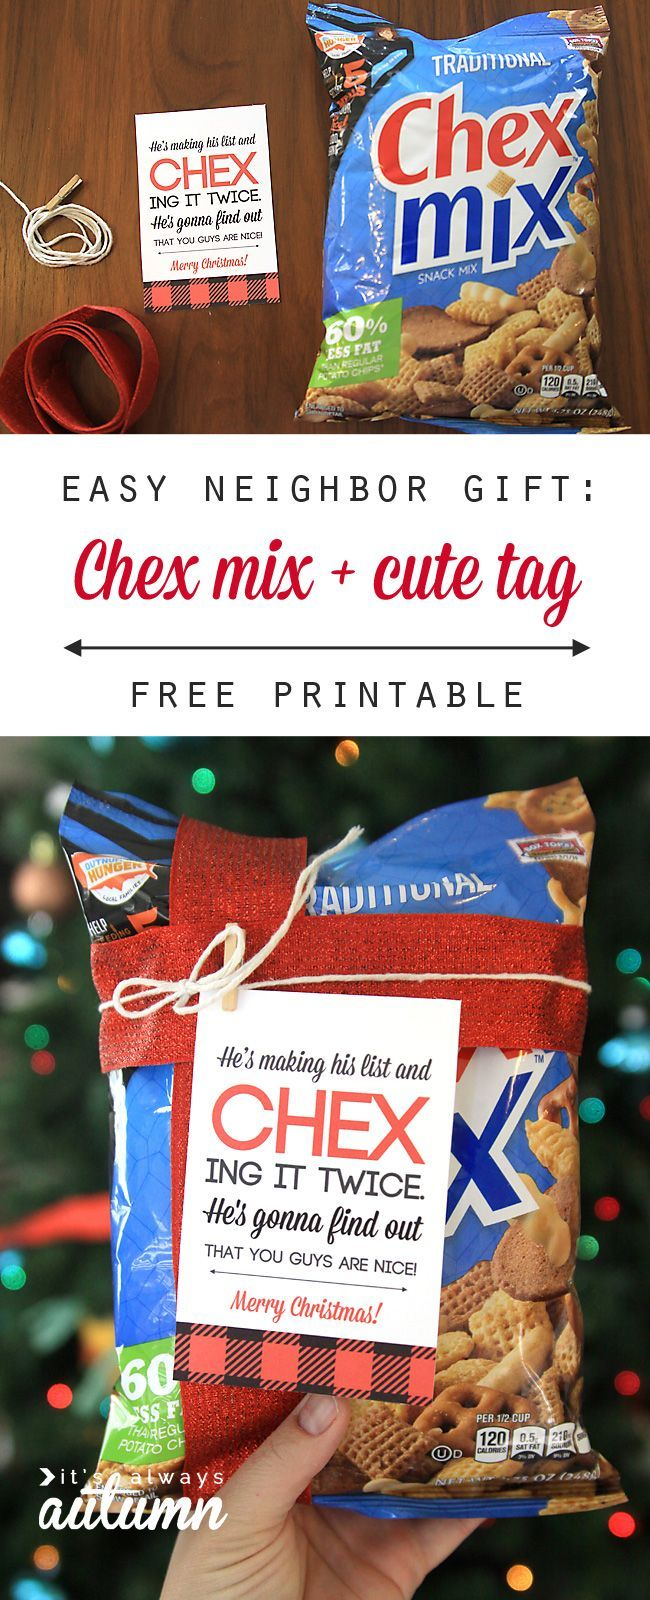 easy neighbor gift idea: CHEX mix + cute tag - It's Always Autumn